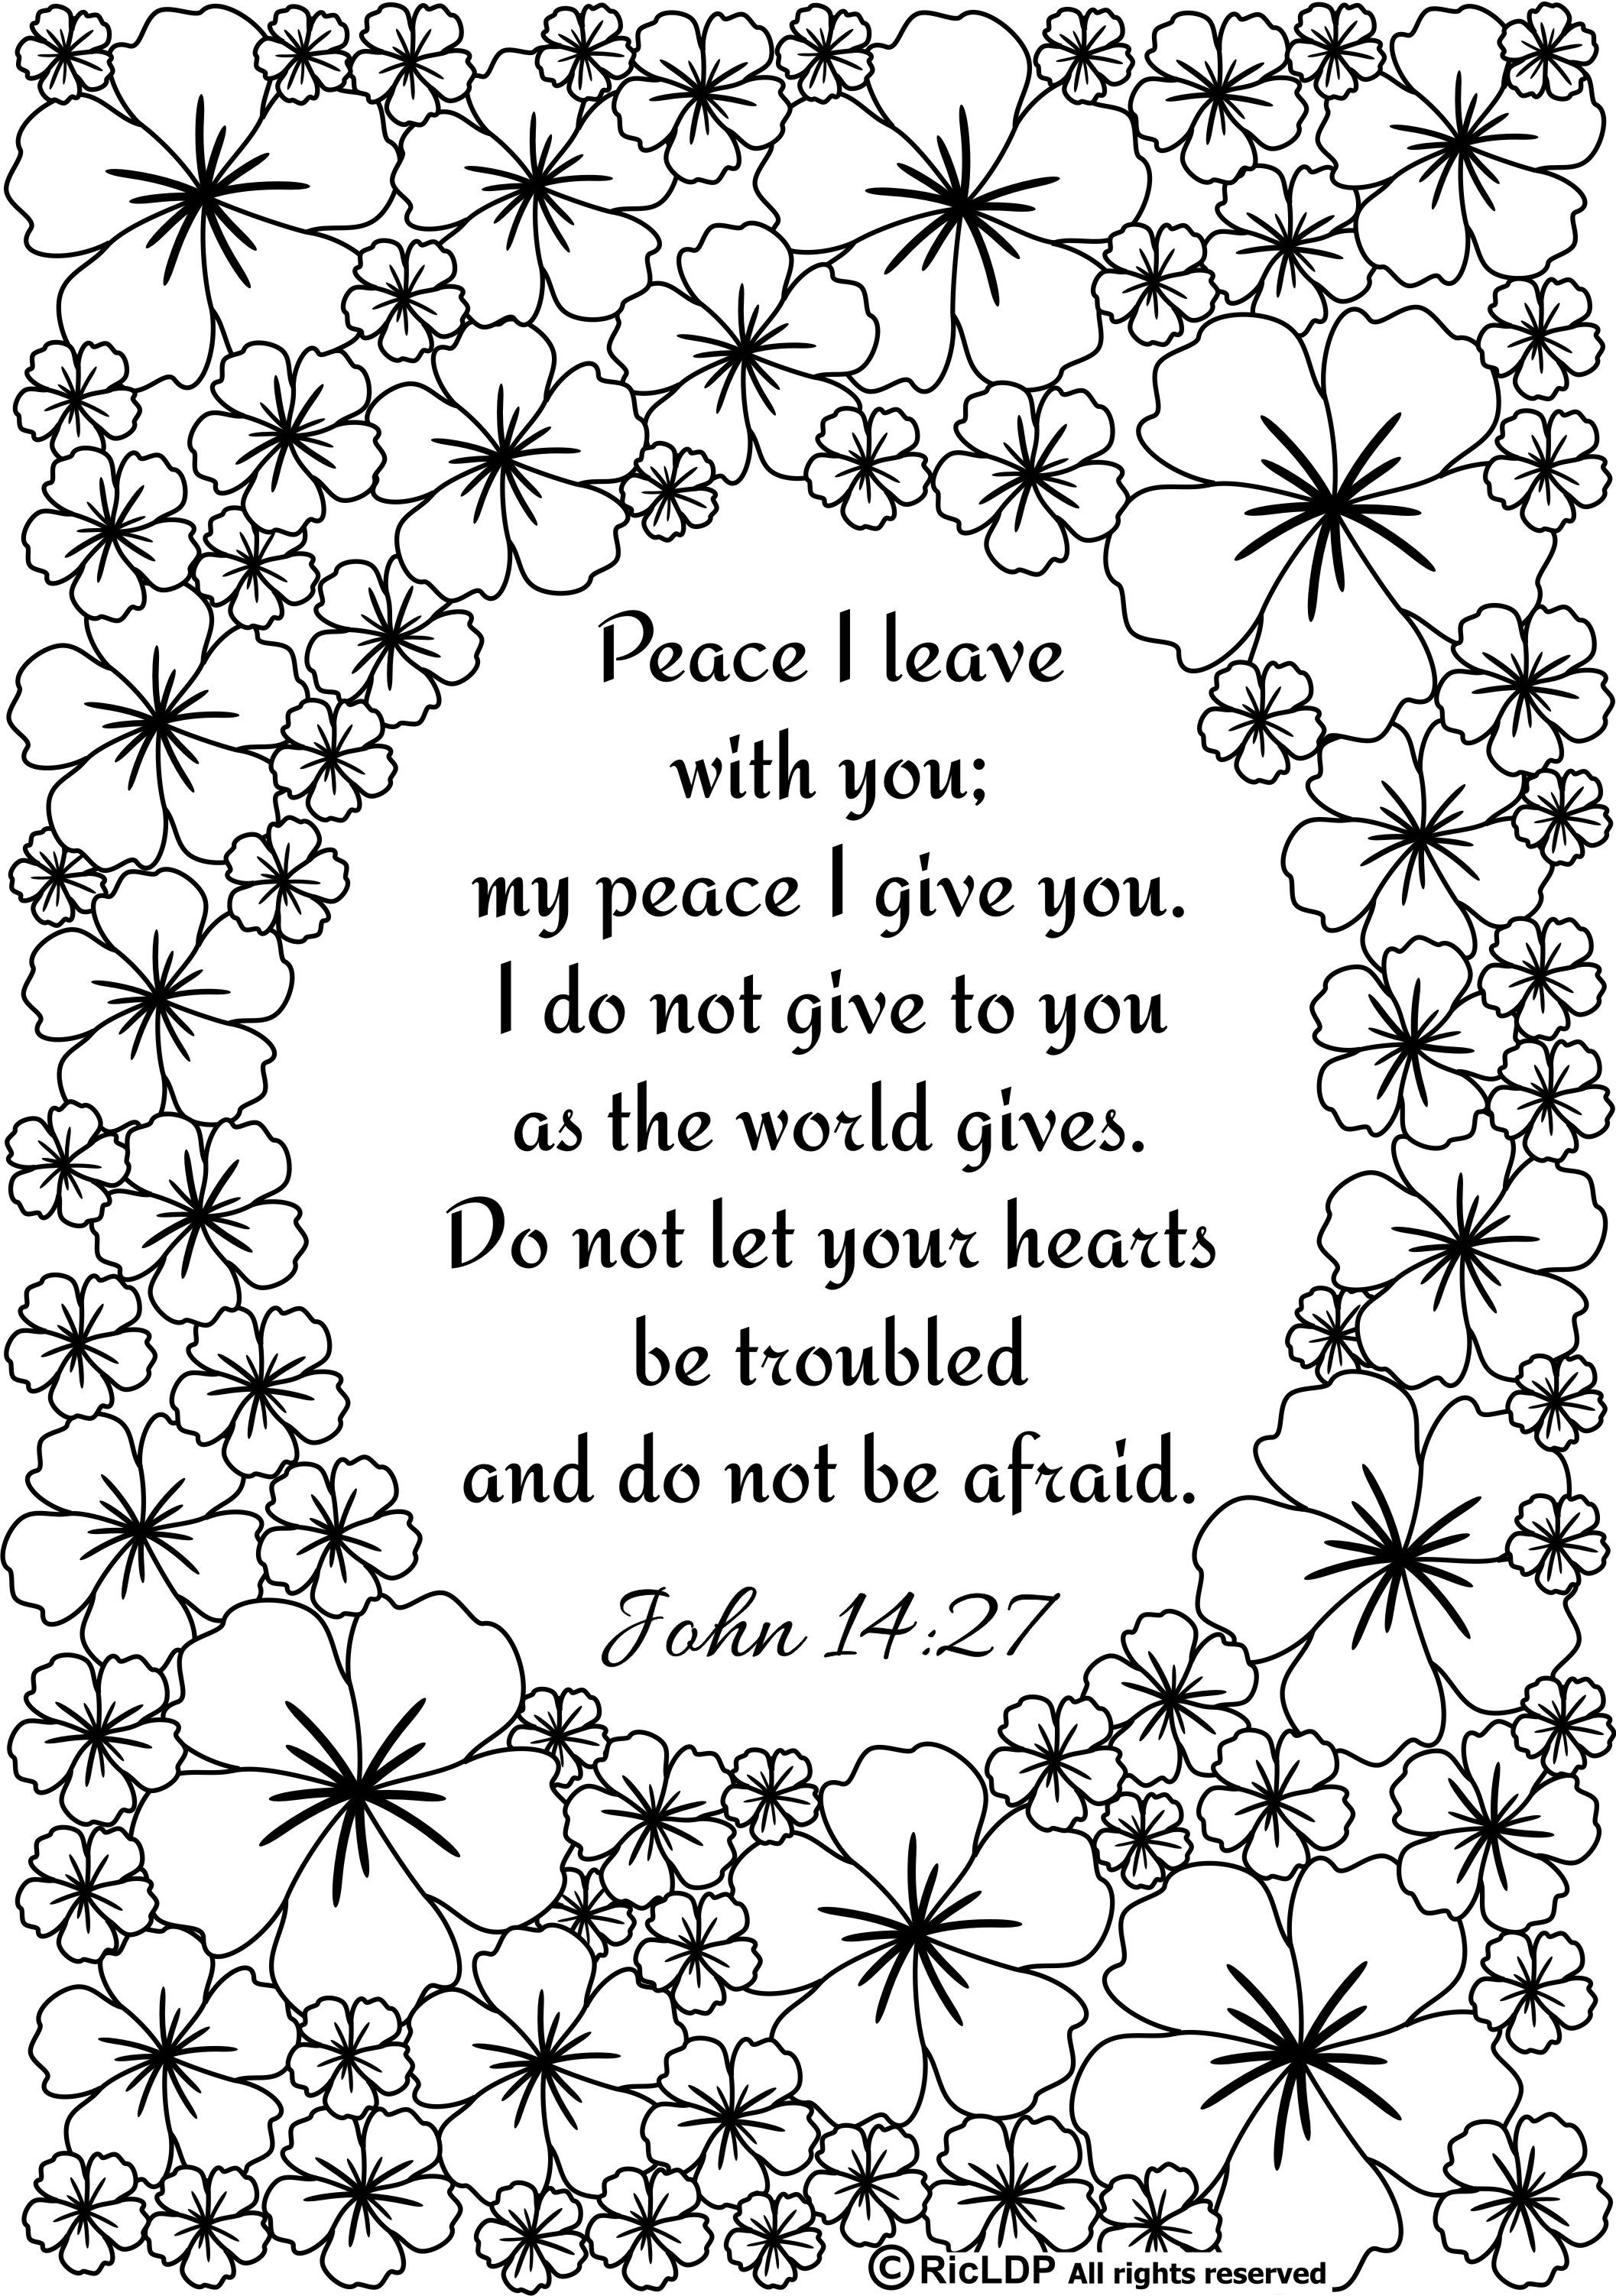 Ricldp Artworks (Ricldp)   Coloring Pages!!!   Pinterest   Bible - Free Printable Bible Coloring Pages With Verses